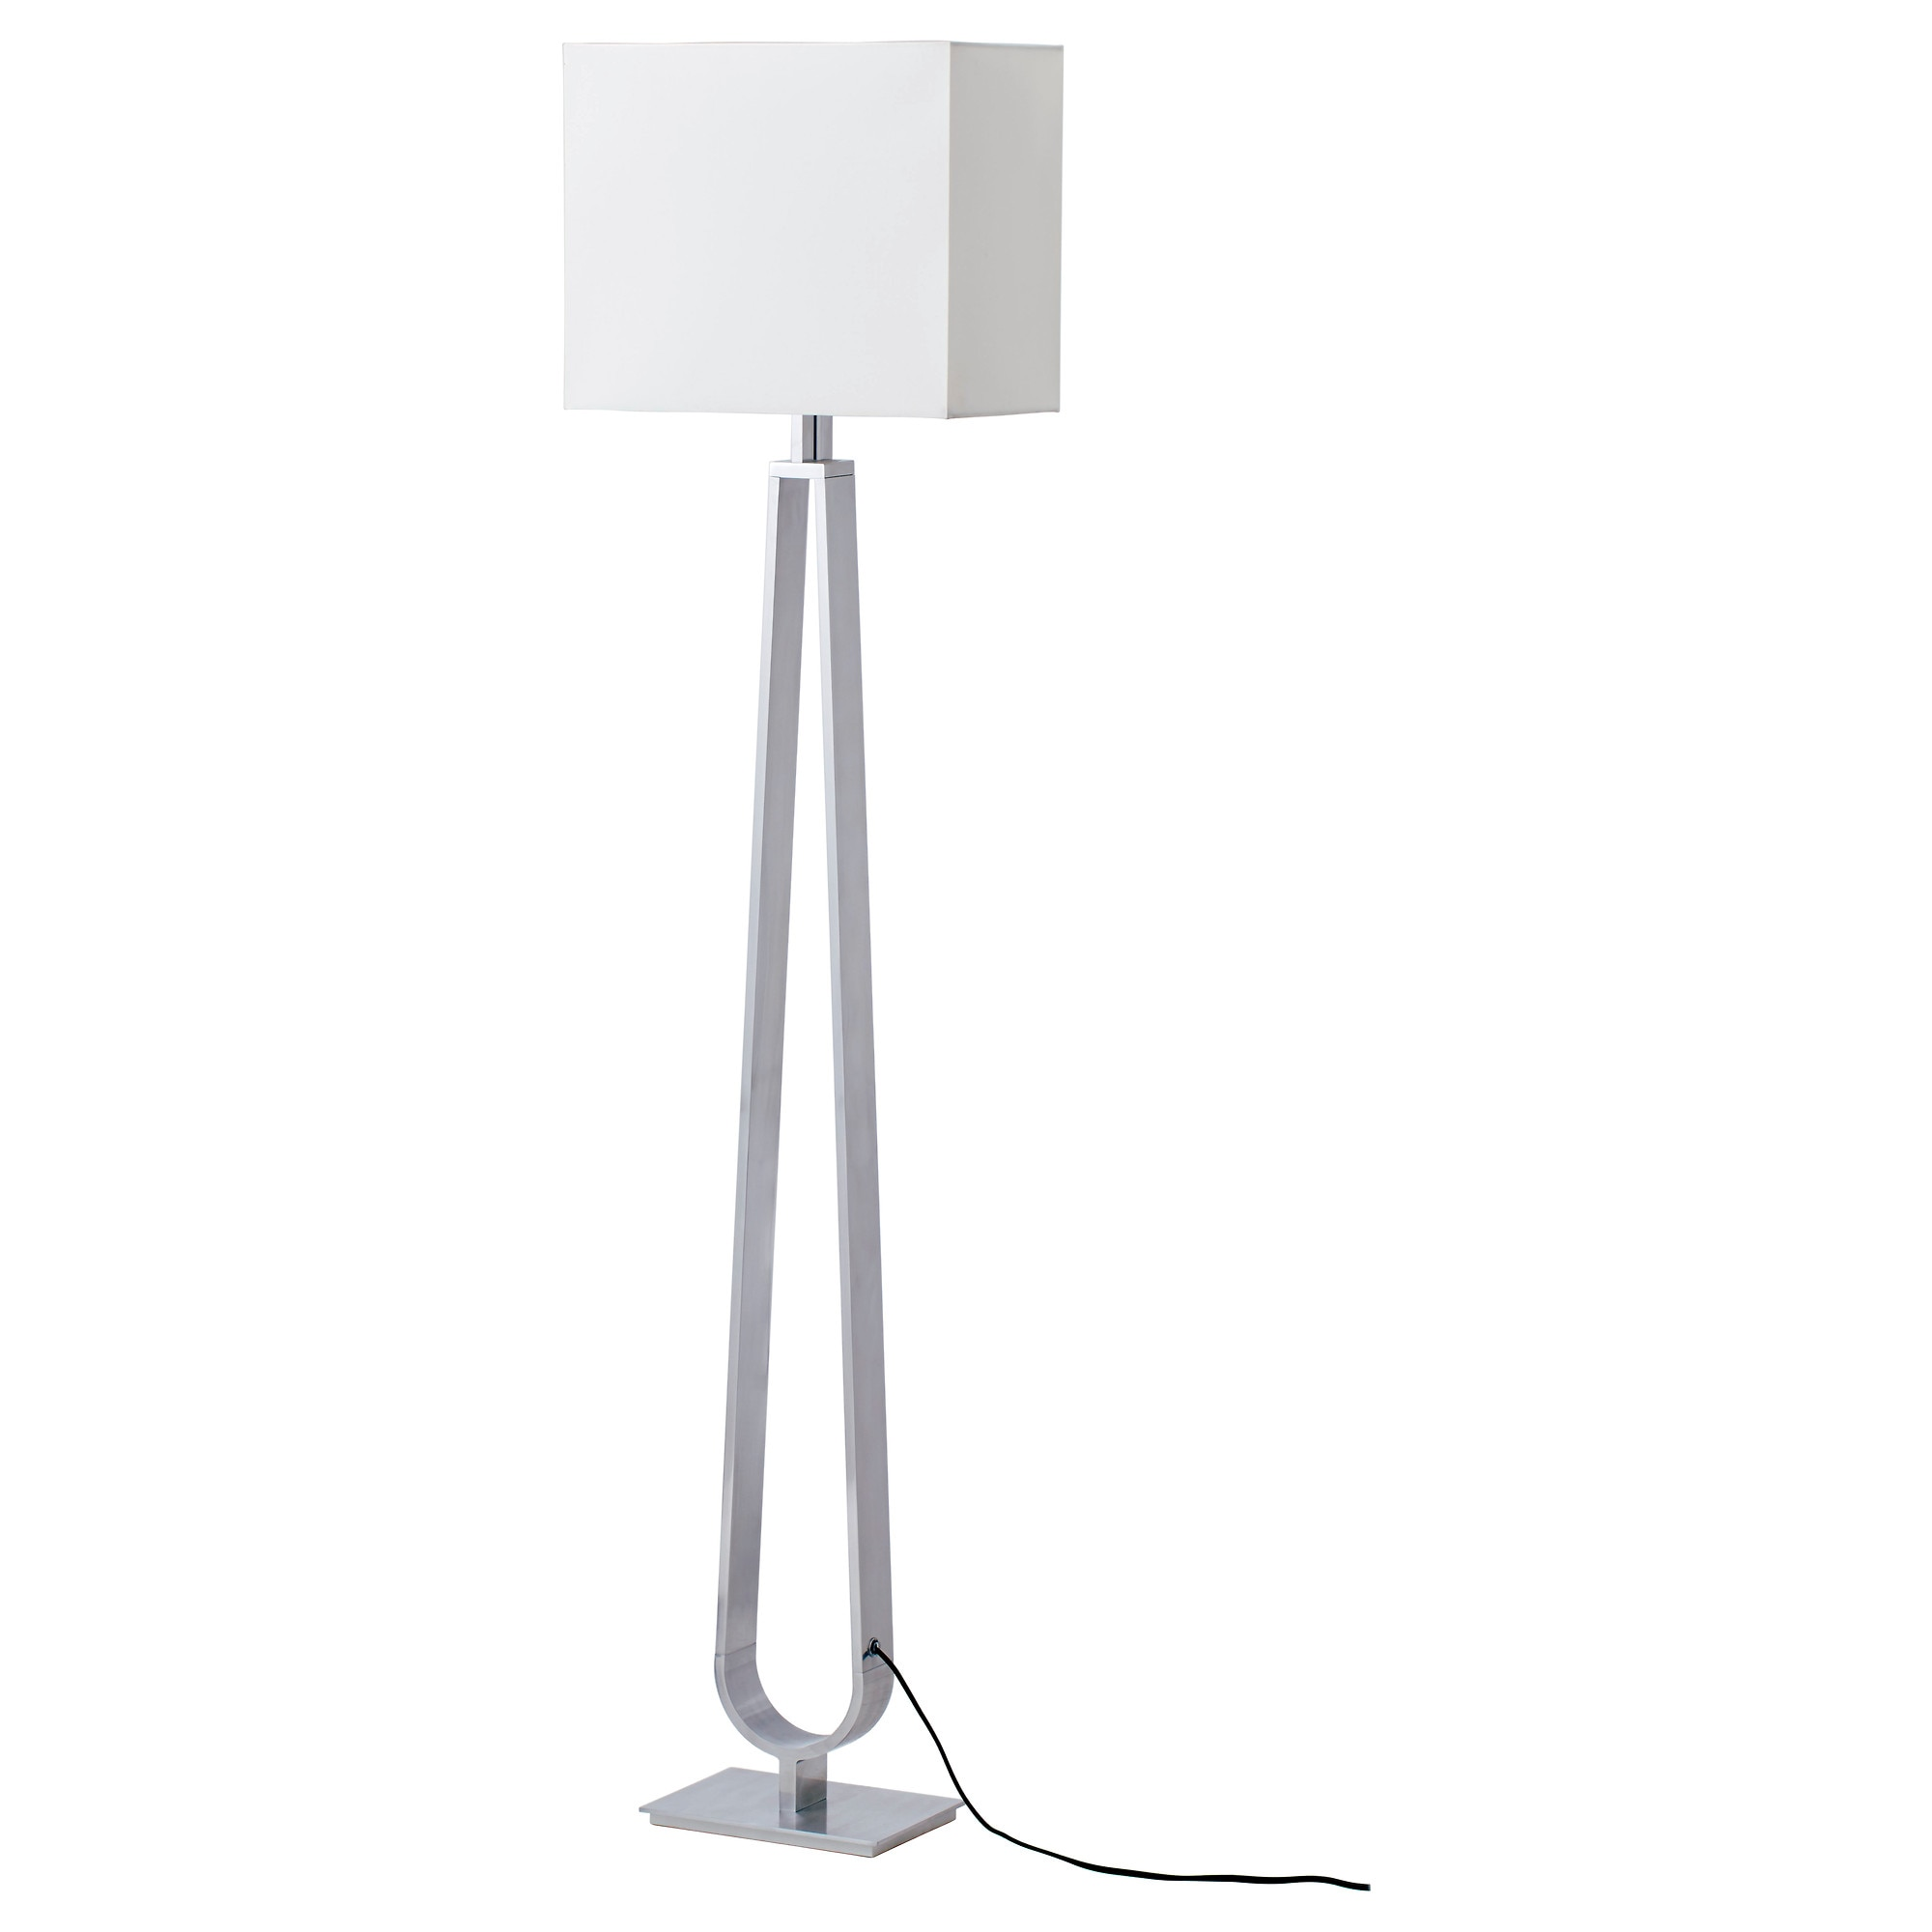 KLABB Floor lamp with LED bulb - IKEA